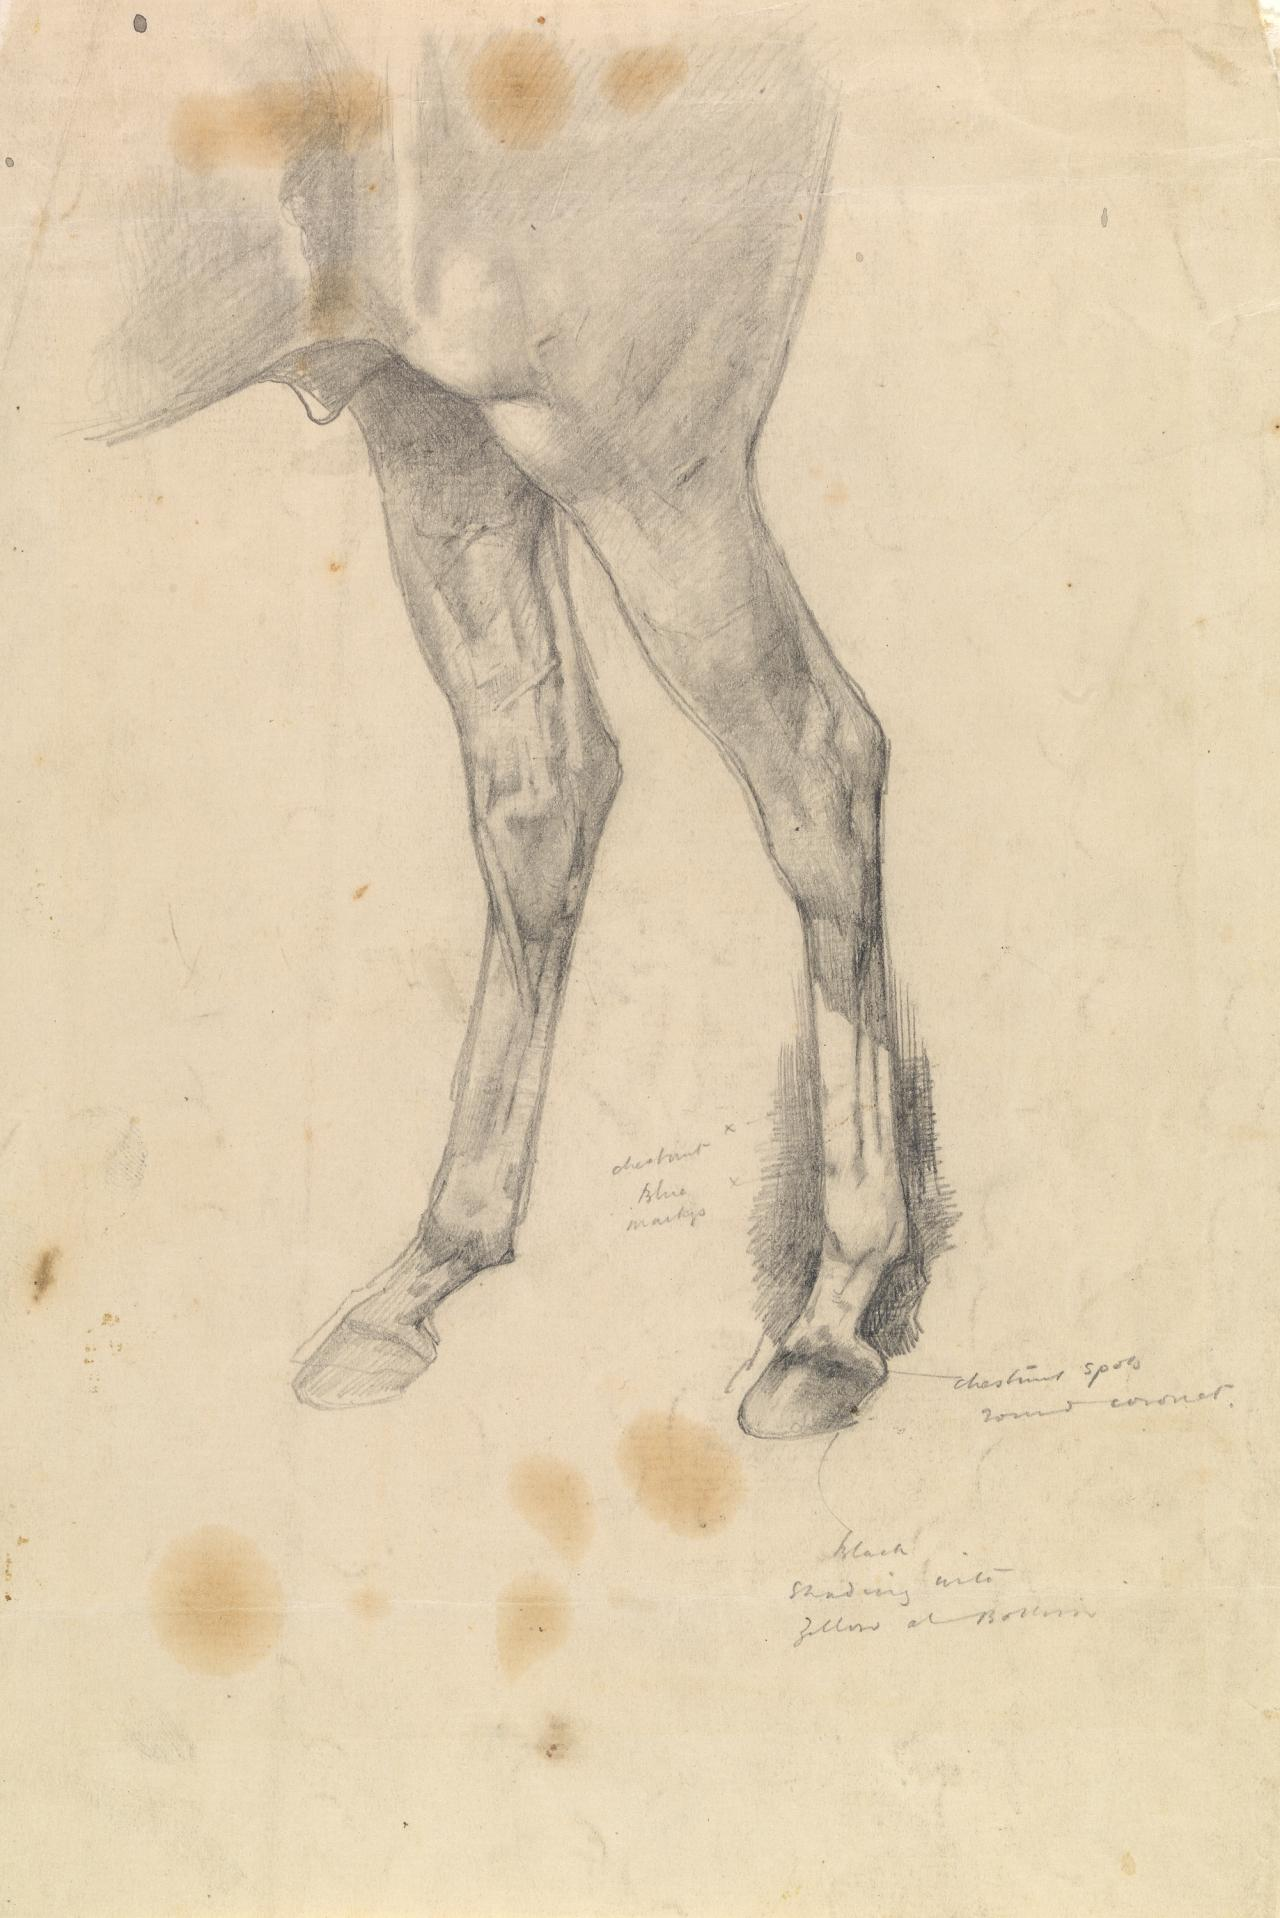 Study of the hind legs of a horse Eurythmic